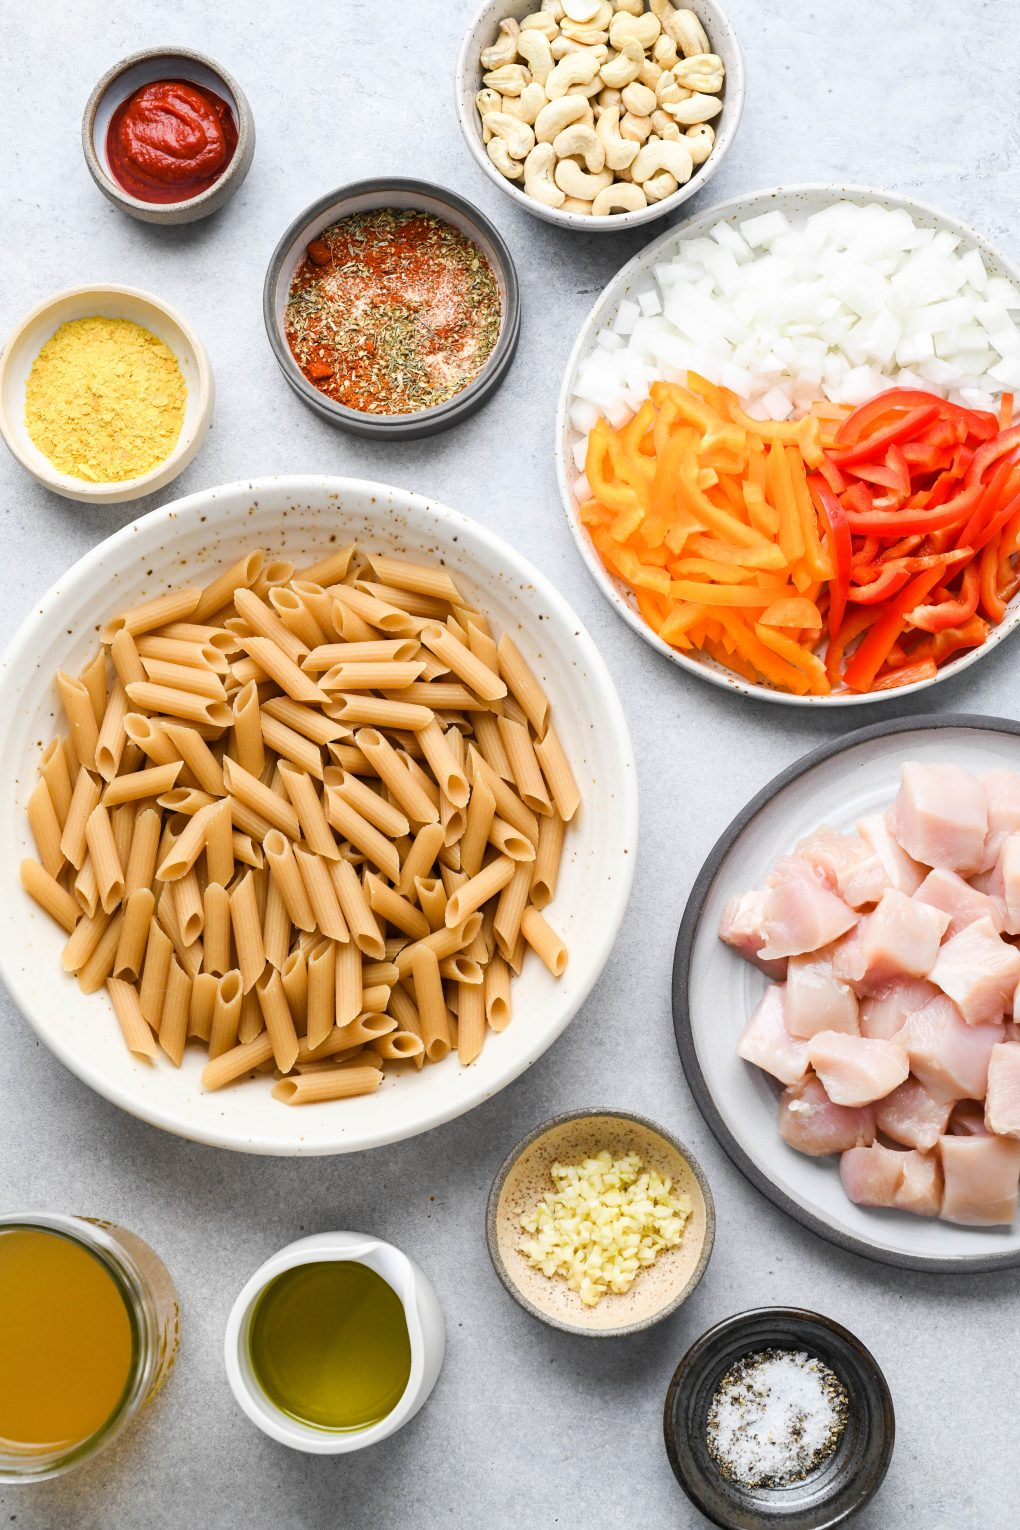 Ingredients for cajun chicken pasta on a light colored background. A bowl of cajun spice blend, a bowl of nutritional yeast, a bowl of chopped garlic, a bowl of uncooked penne pasta, a plate with chopped onion and bell peppers, and a plate with diced raw chicken.